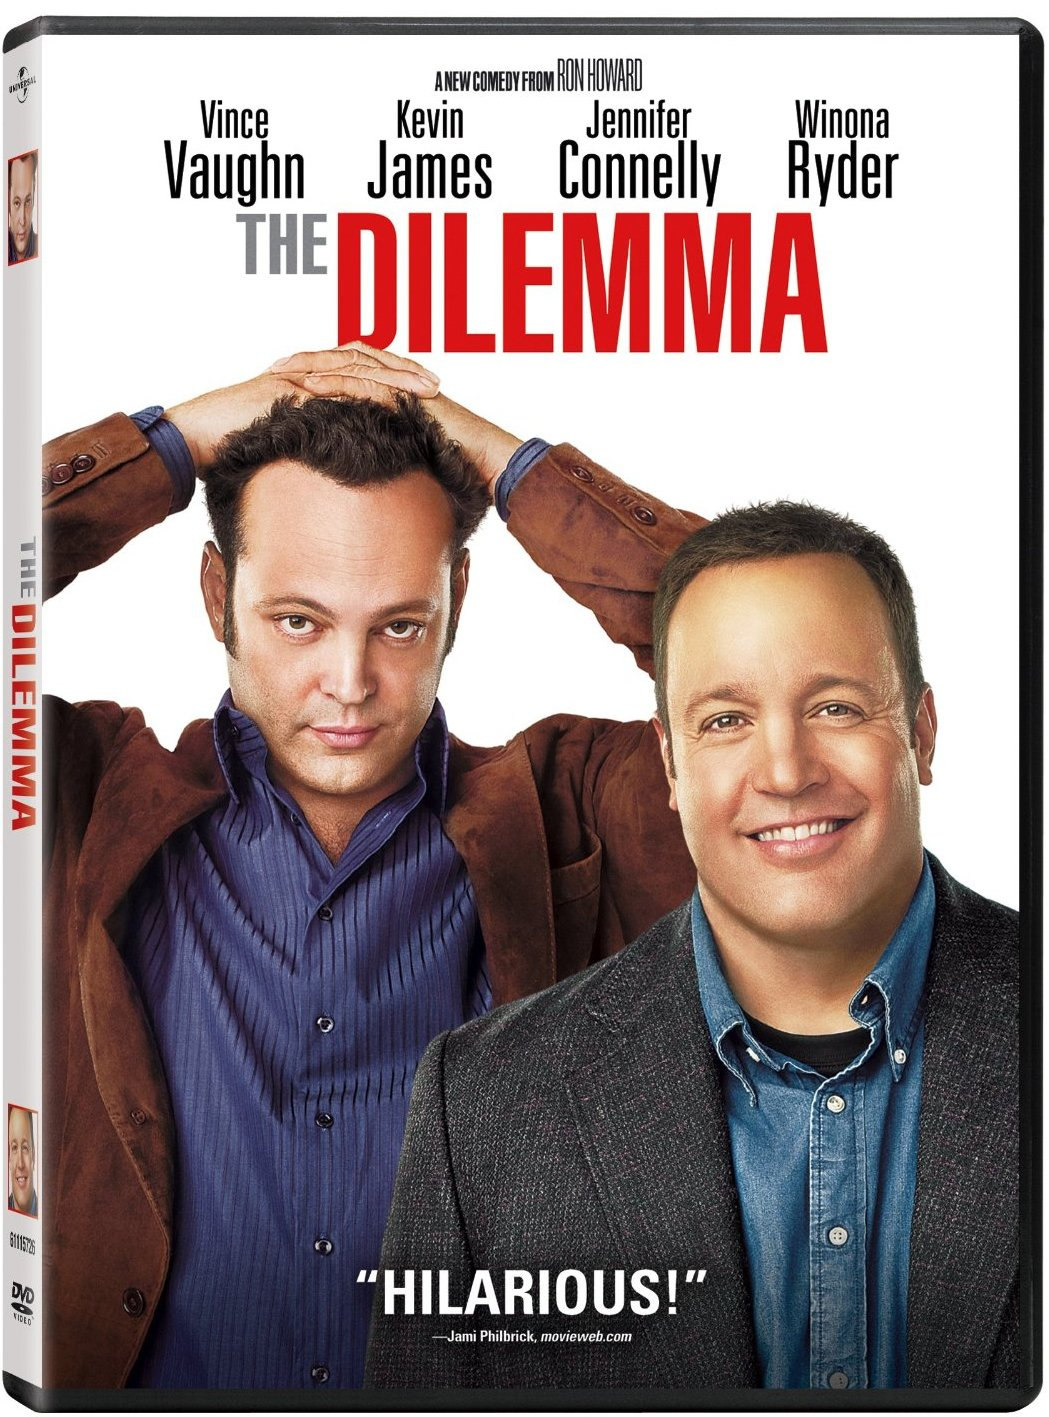 vince vaughn dating movie Wwwmiramaxcom/movie/swingers the guys experience how ruthless the hollywood dating written by and starring then unknowns jon favreau and vince vaughn.